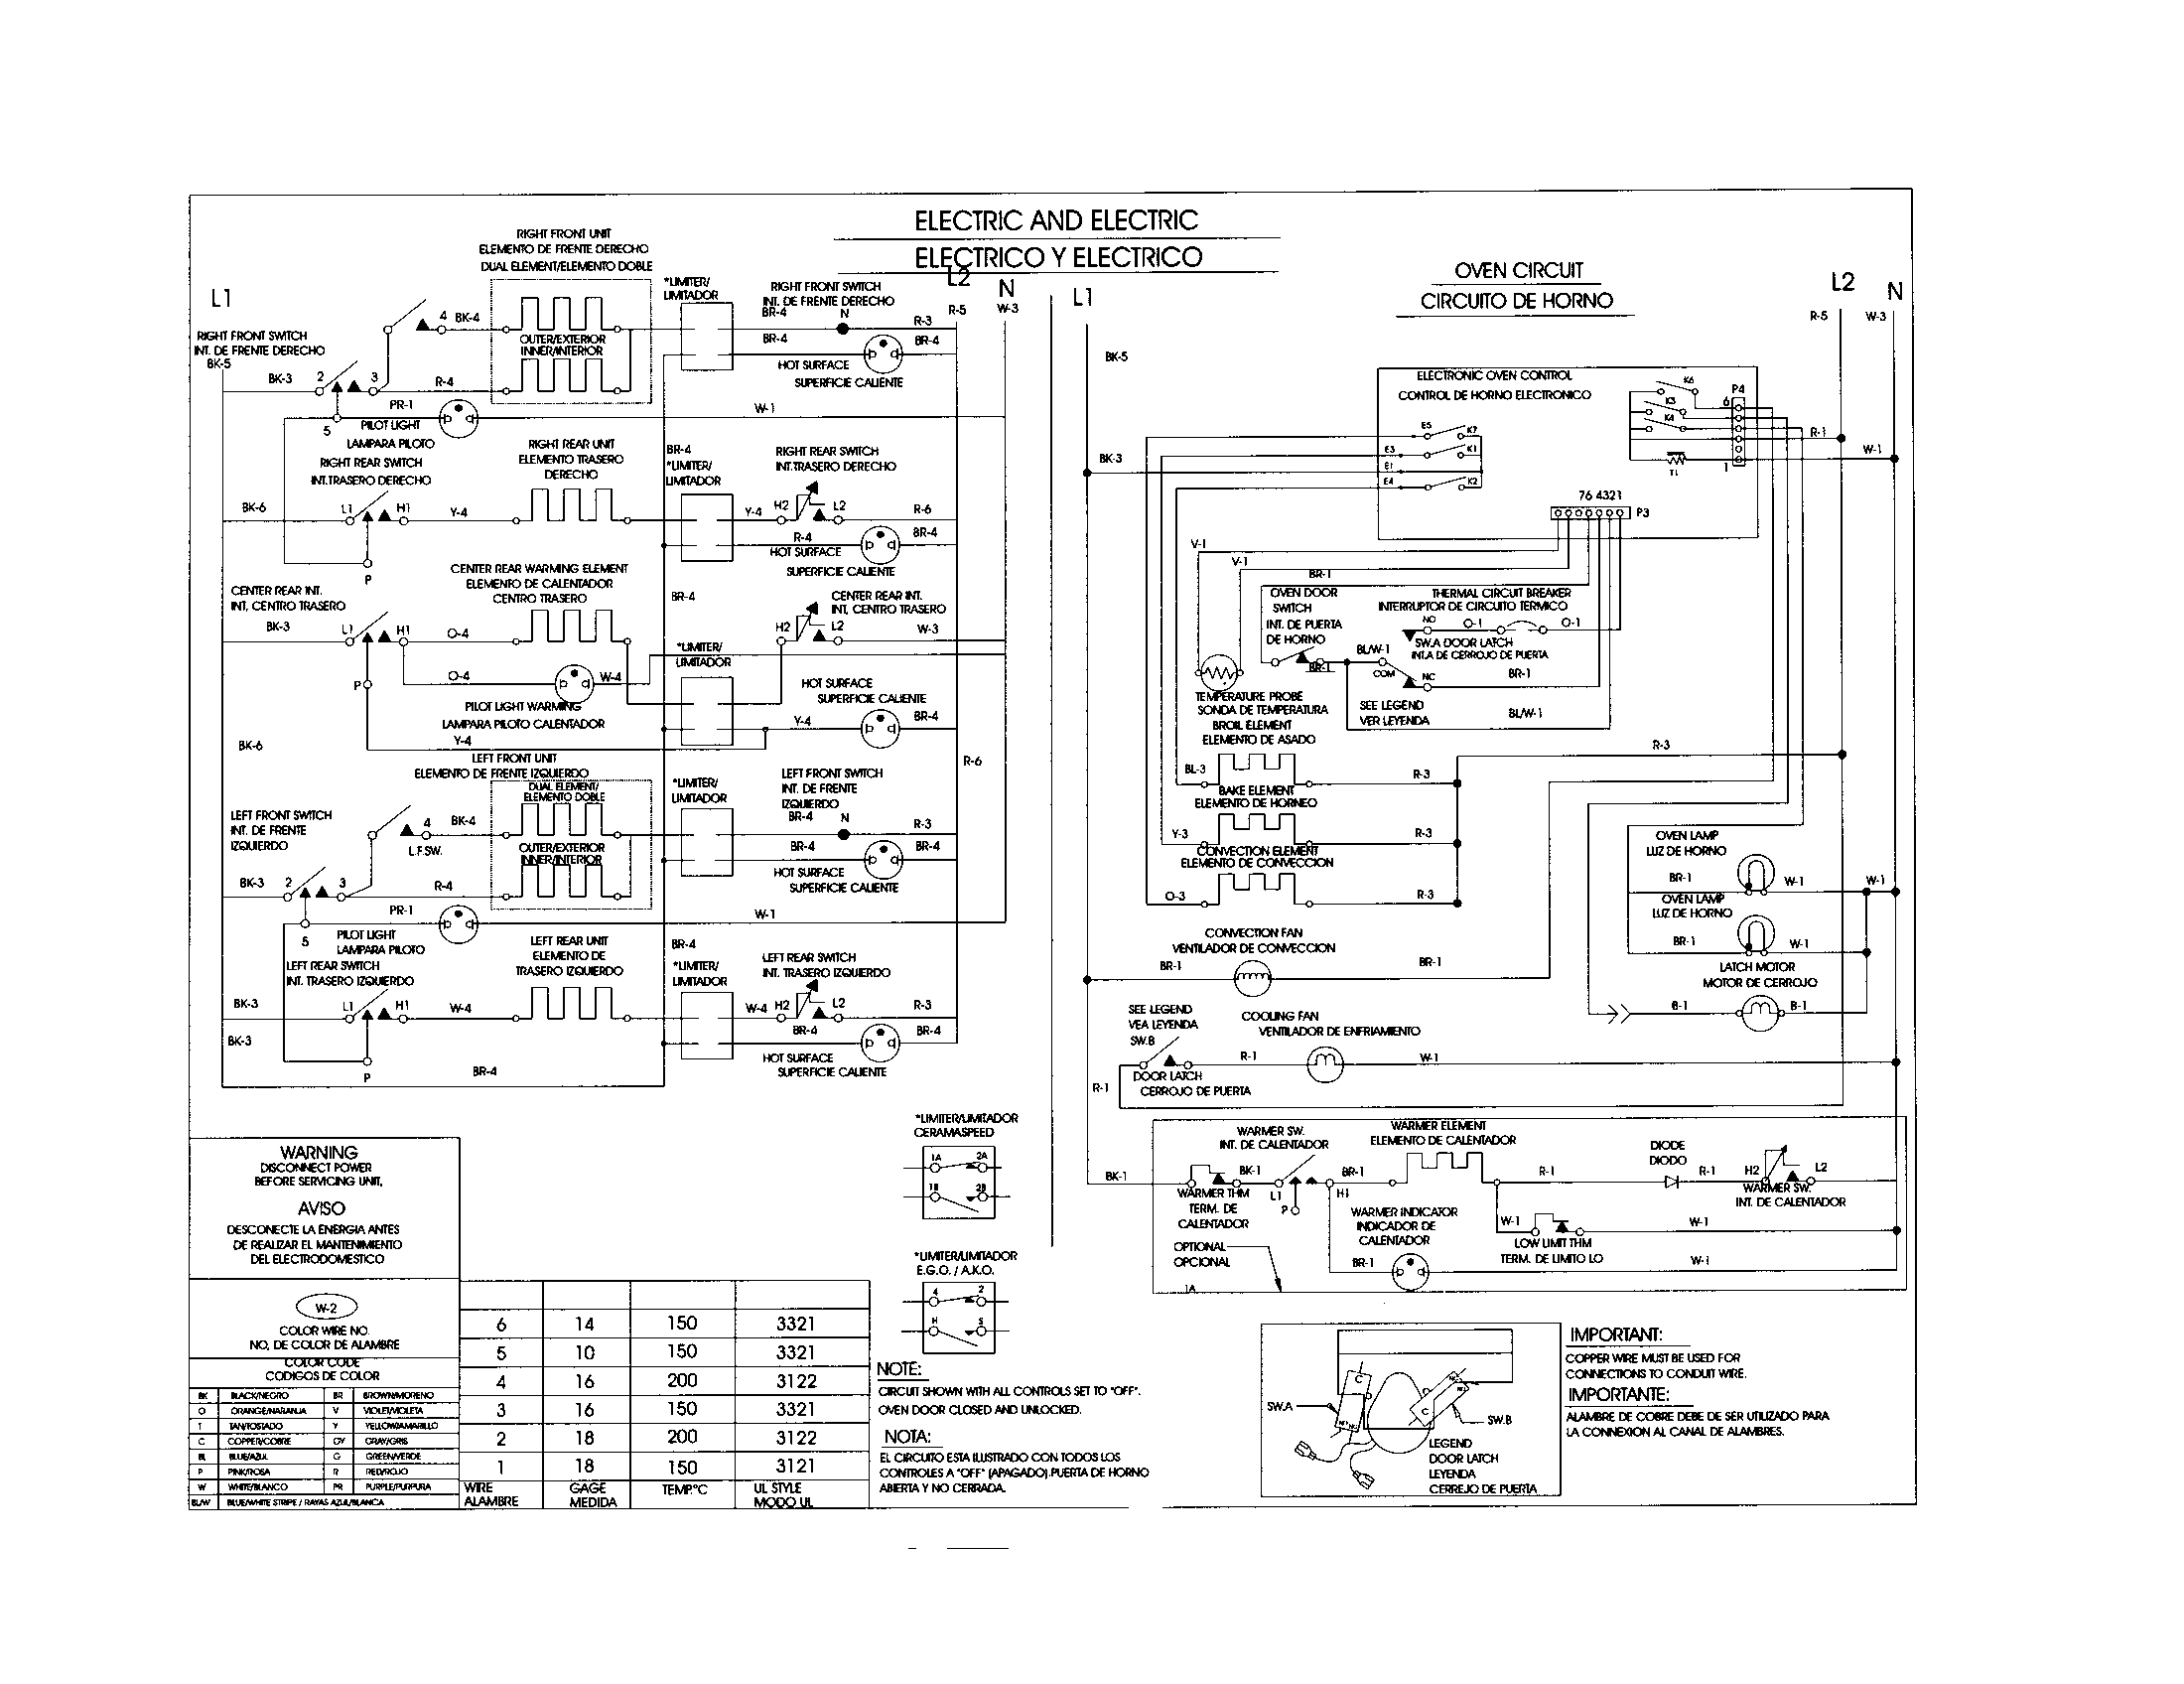 kenmore dishwasher wiring diagram to wiring diagram parts with regard to kenmore elite dishwasher 665 parts diagram kenmore elite dishwasher 665 parts diagram automotive parts ge332max h ultra wiring diagram at panicattacktreatment.co